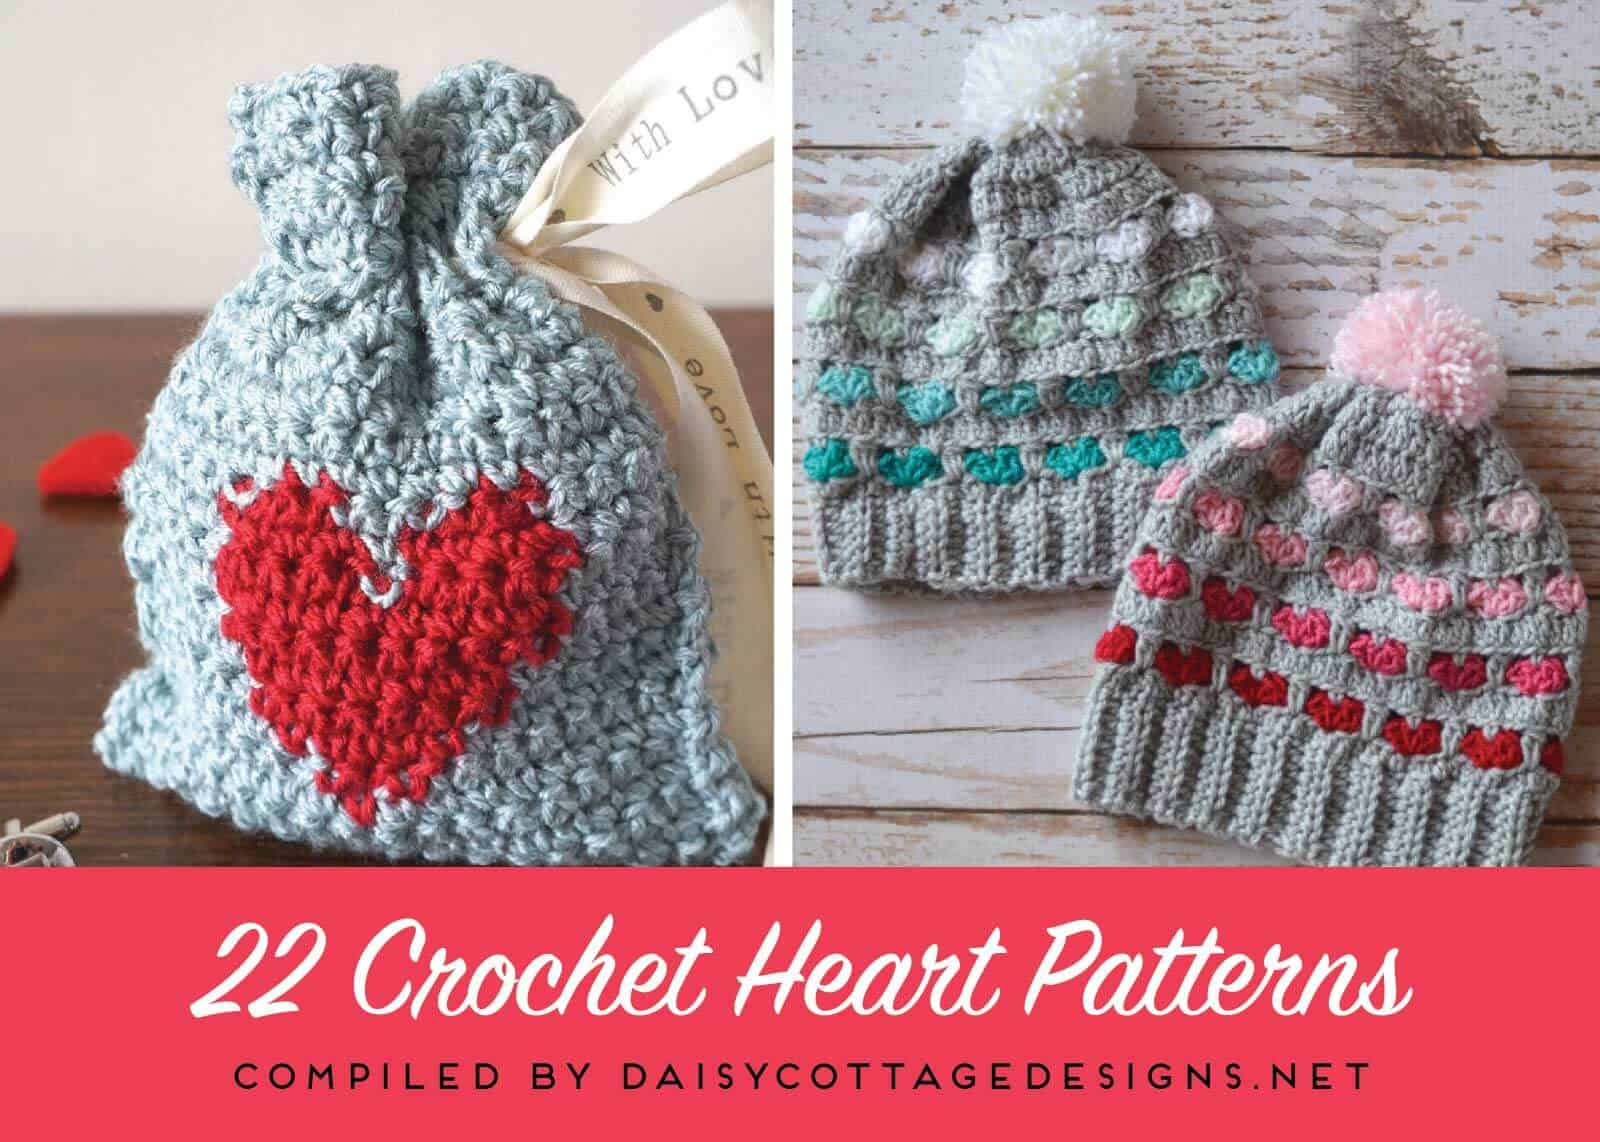 Use this collection of crochet heart patterns to make something for everyone on your list. From scarves to coffee cozies - all with hearts!